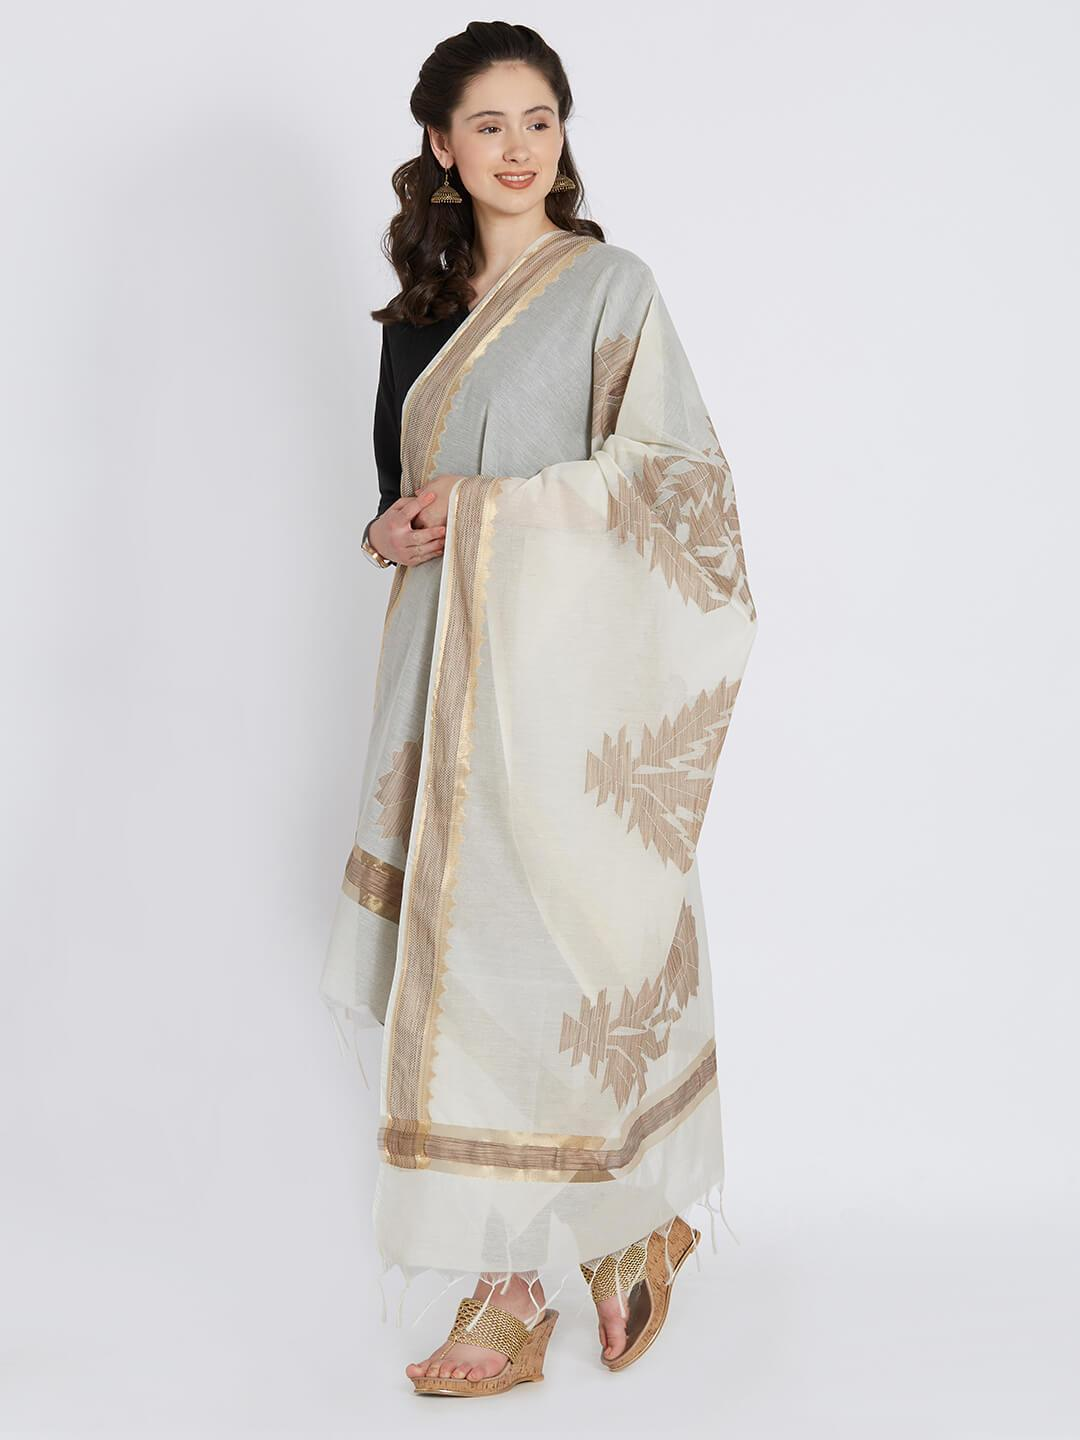 CraftsCollection.in - Beige Chanderi Dupatta with motifs